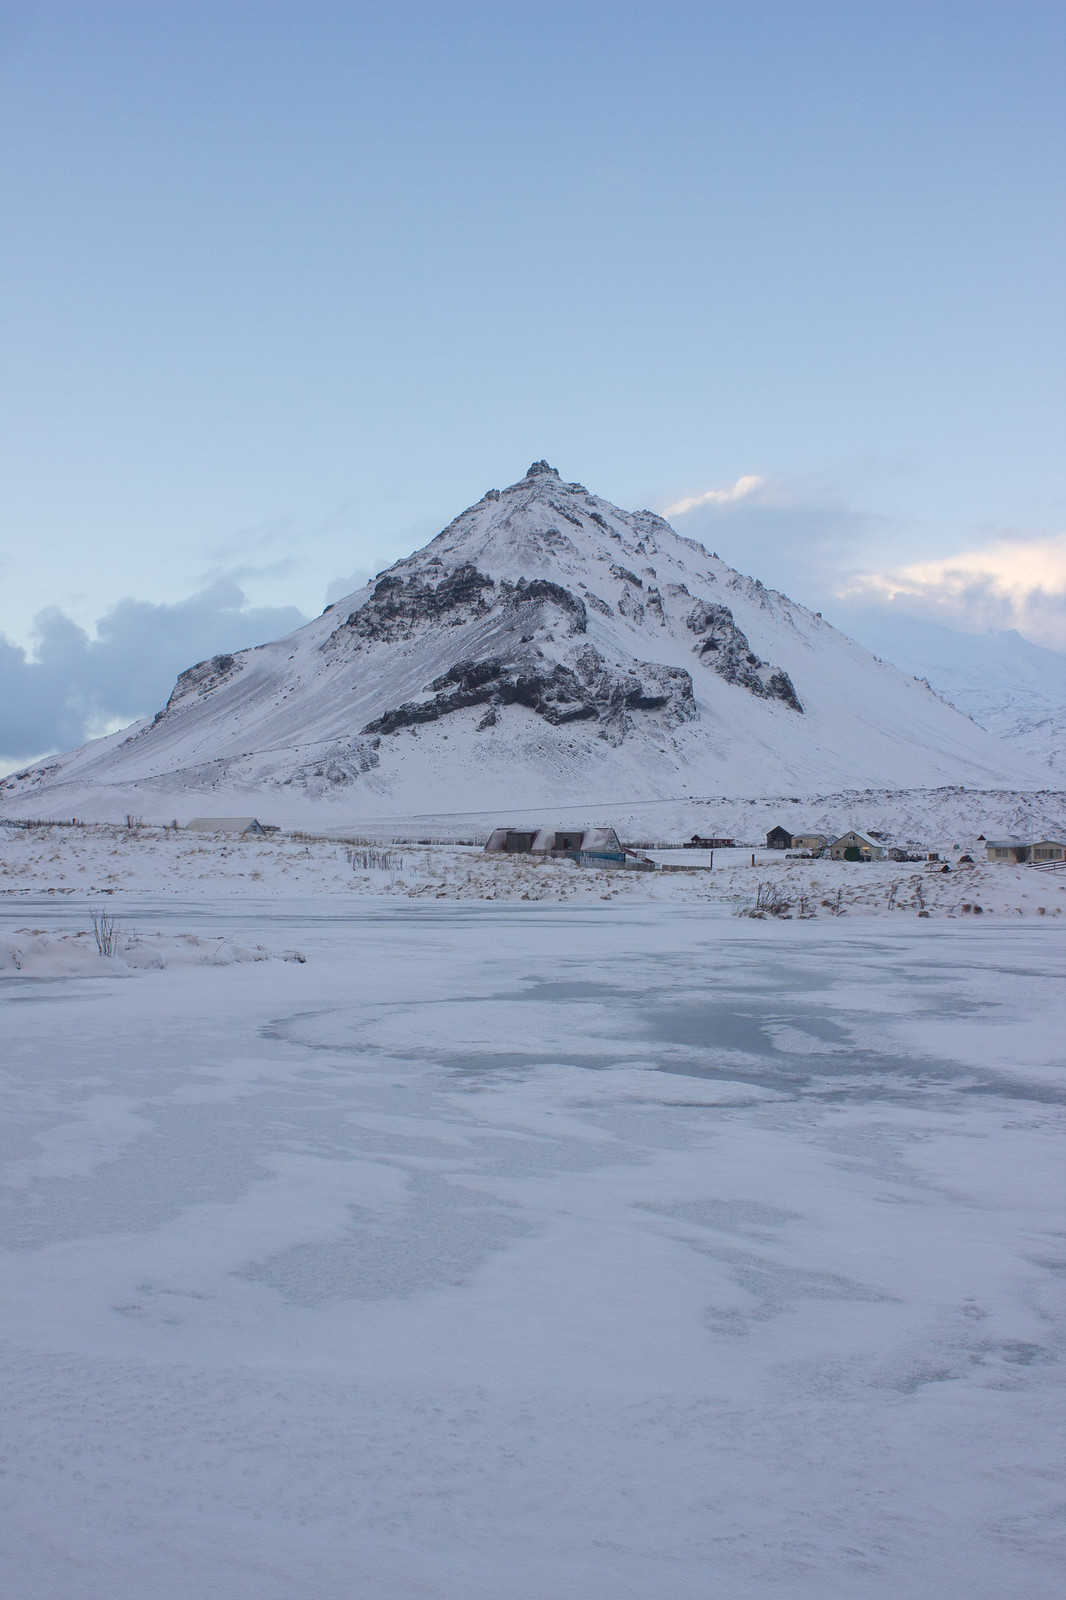 Snaefellsjokull viewed across a frozen lake in December